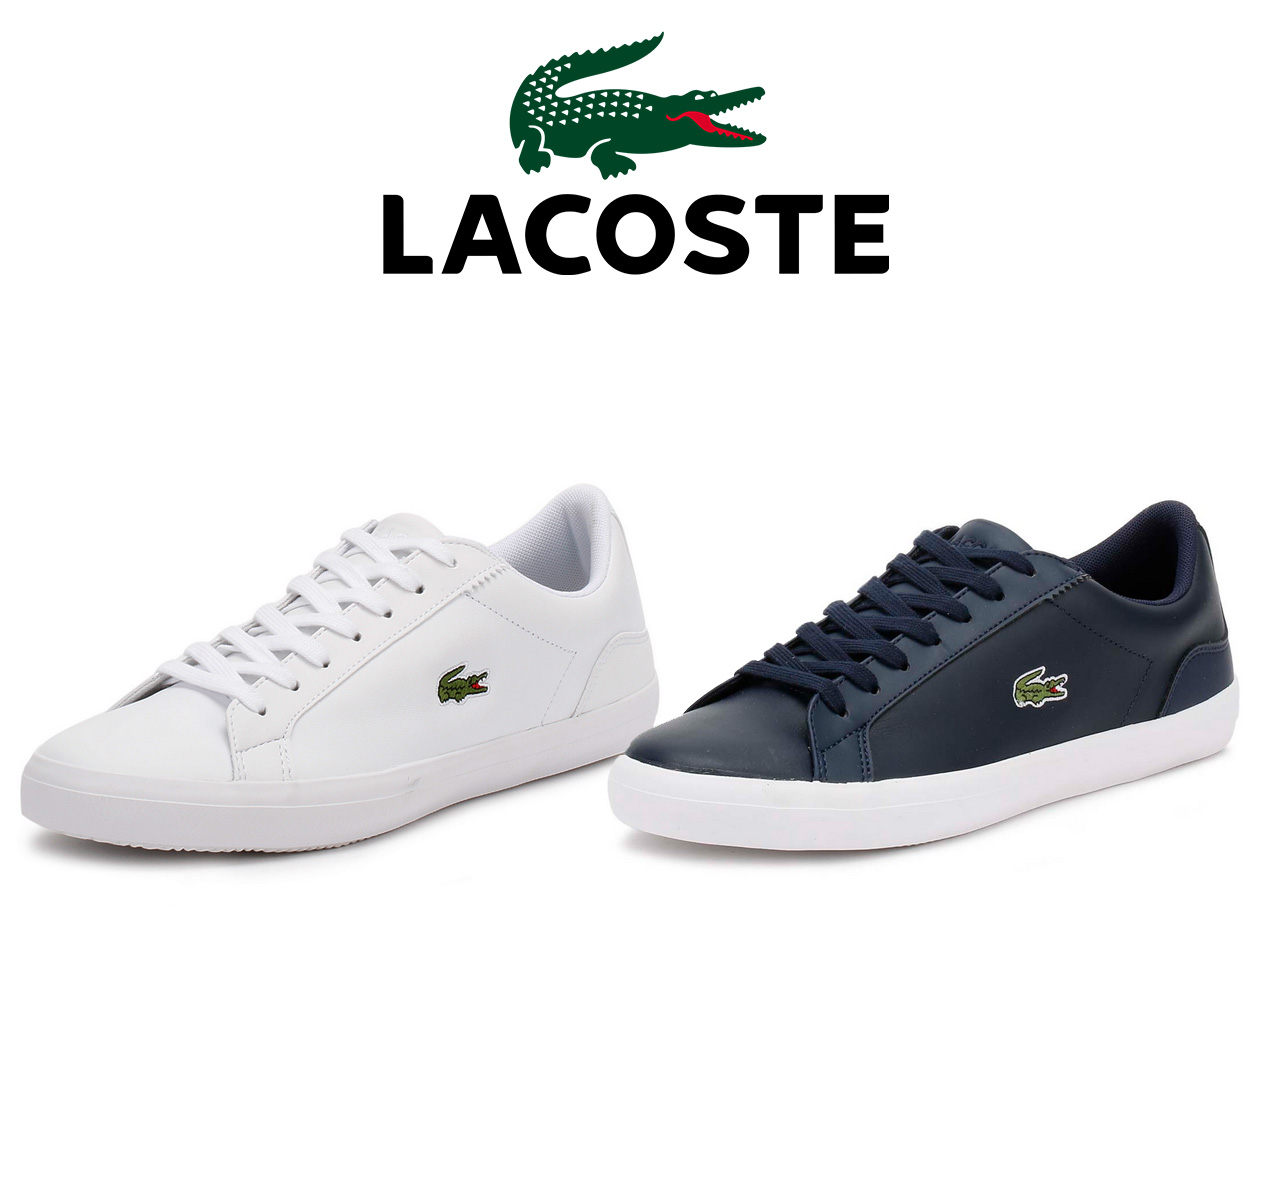 551c1ddb88c9 The sleek and stylish Lacoste Lerond trainers feature a synthetic upper